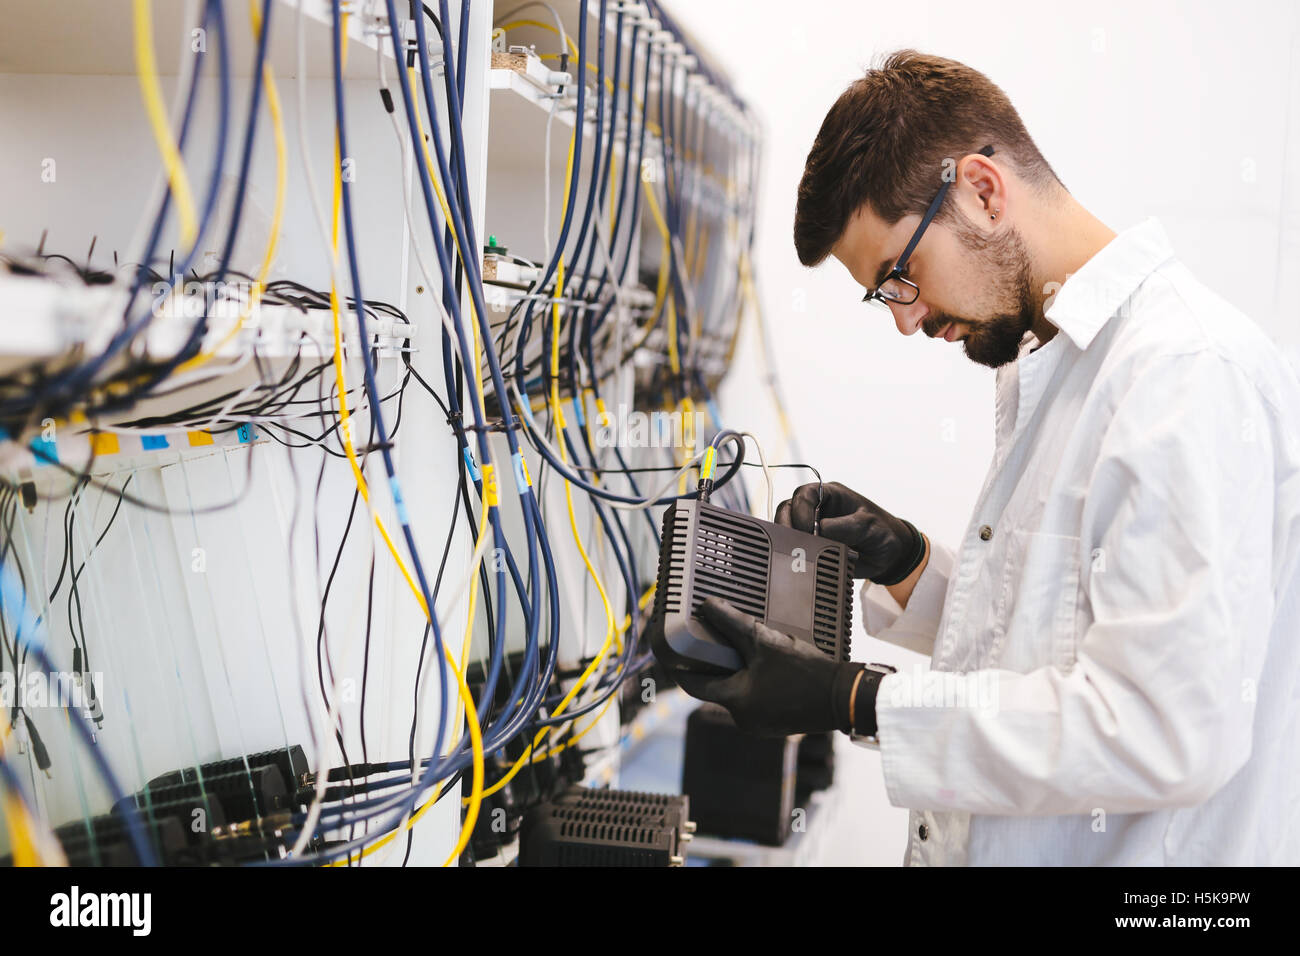 Network technician testing modems in factory - Stock Image